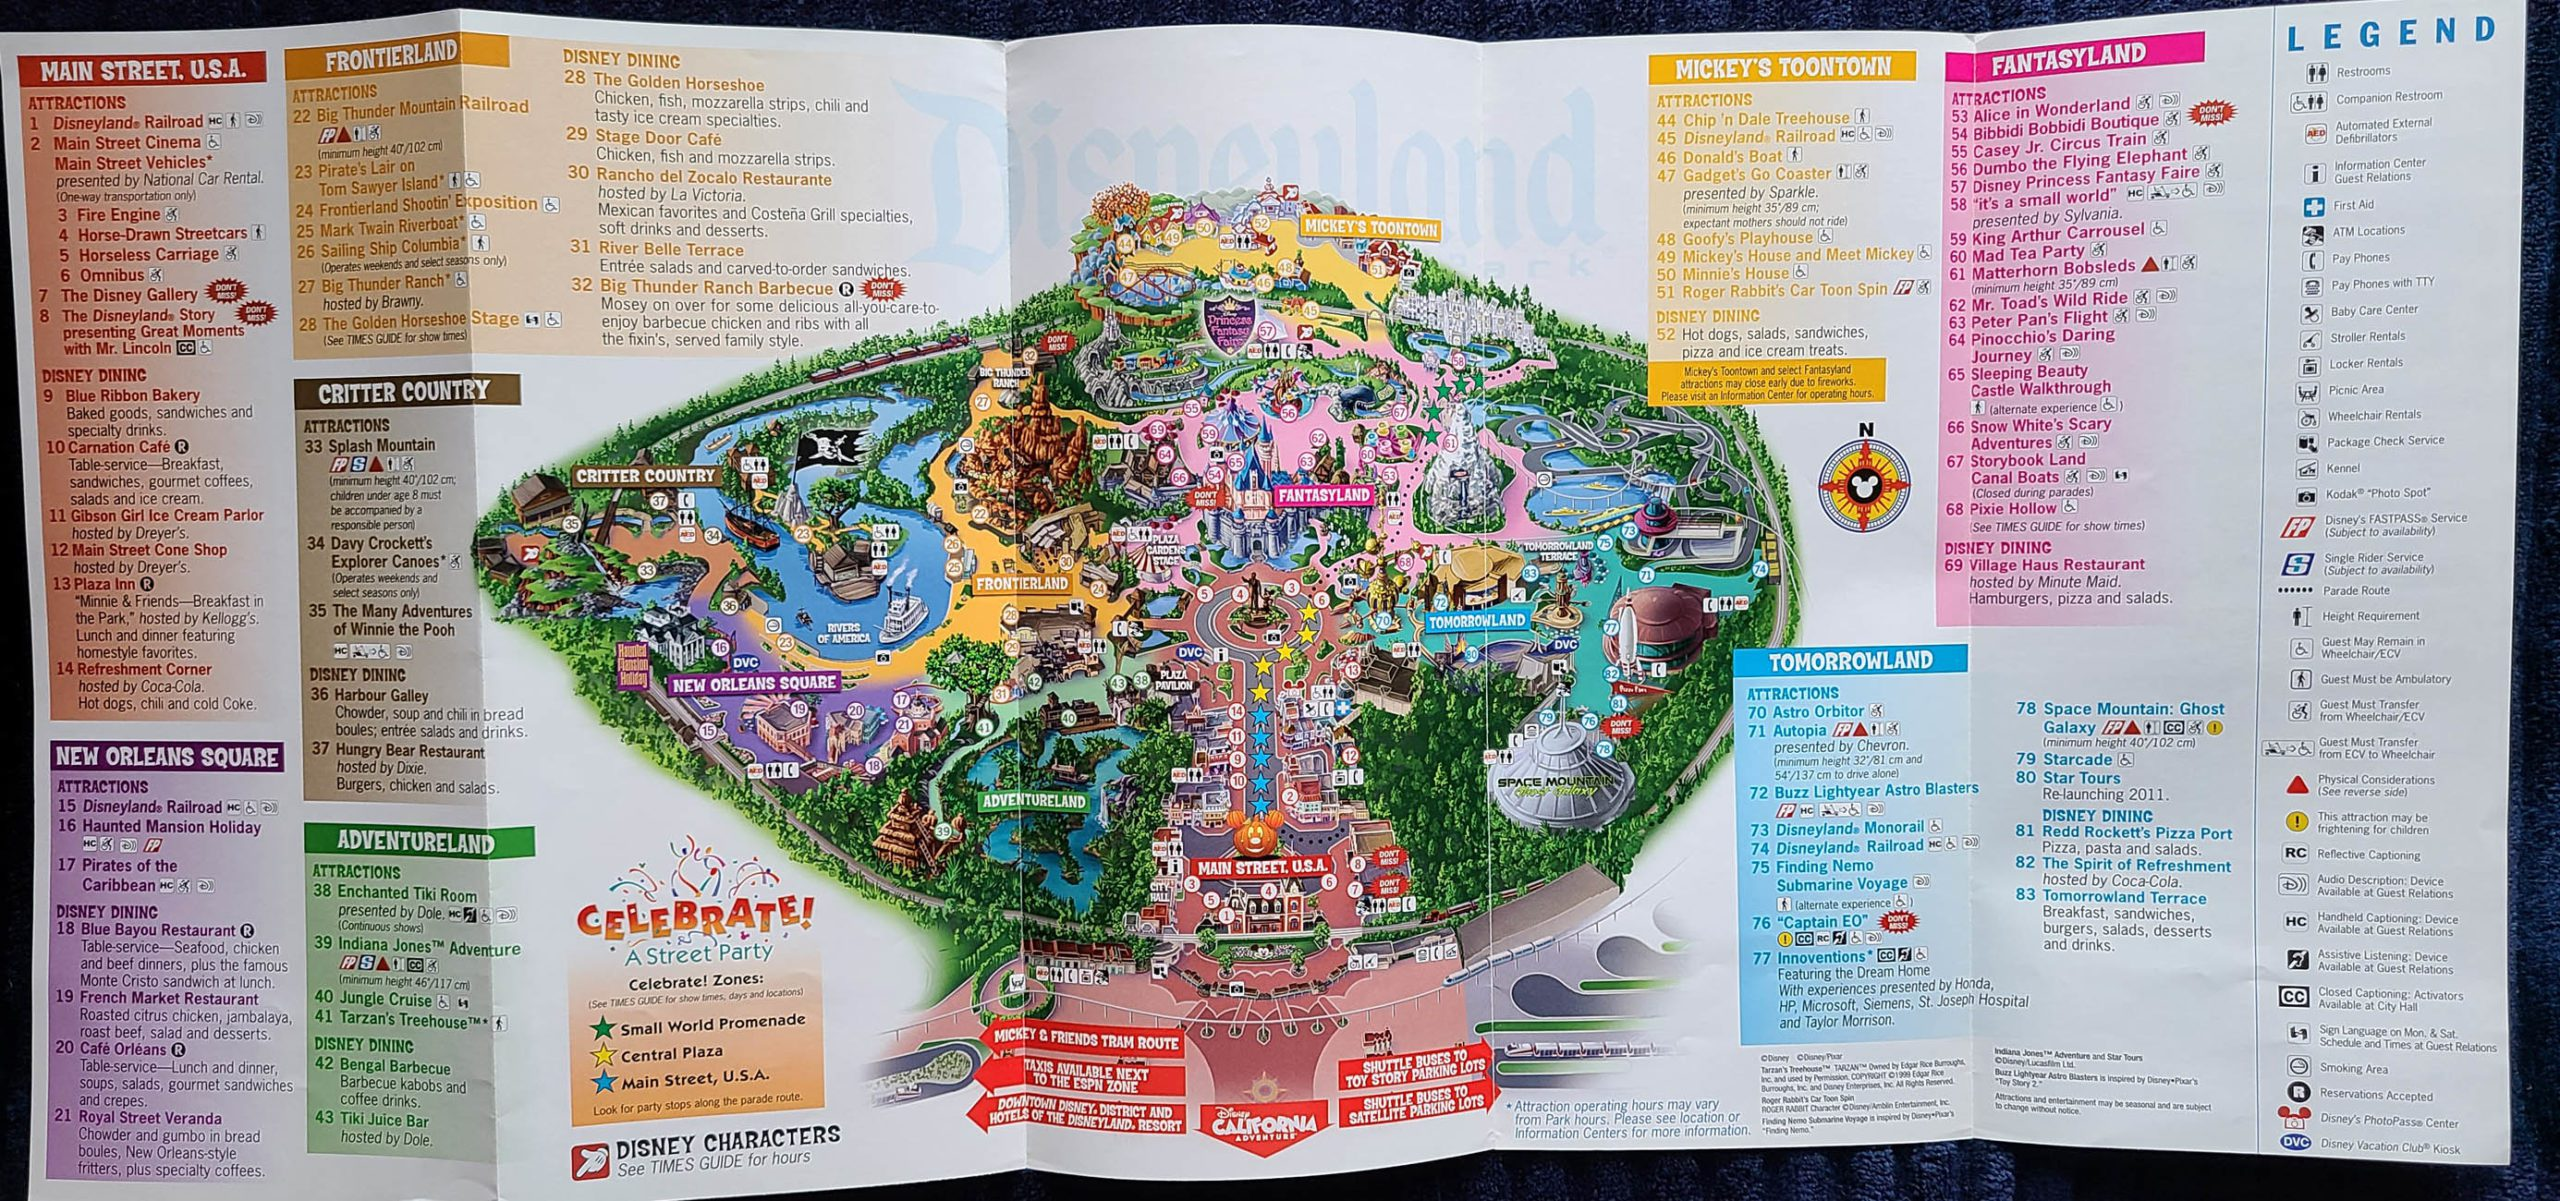 2010 Disneyland Halloween Time Map